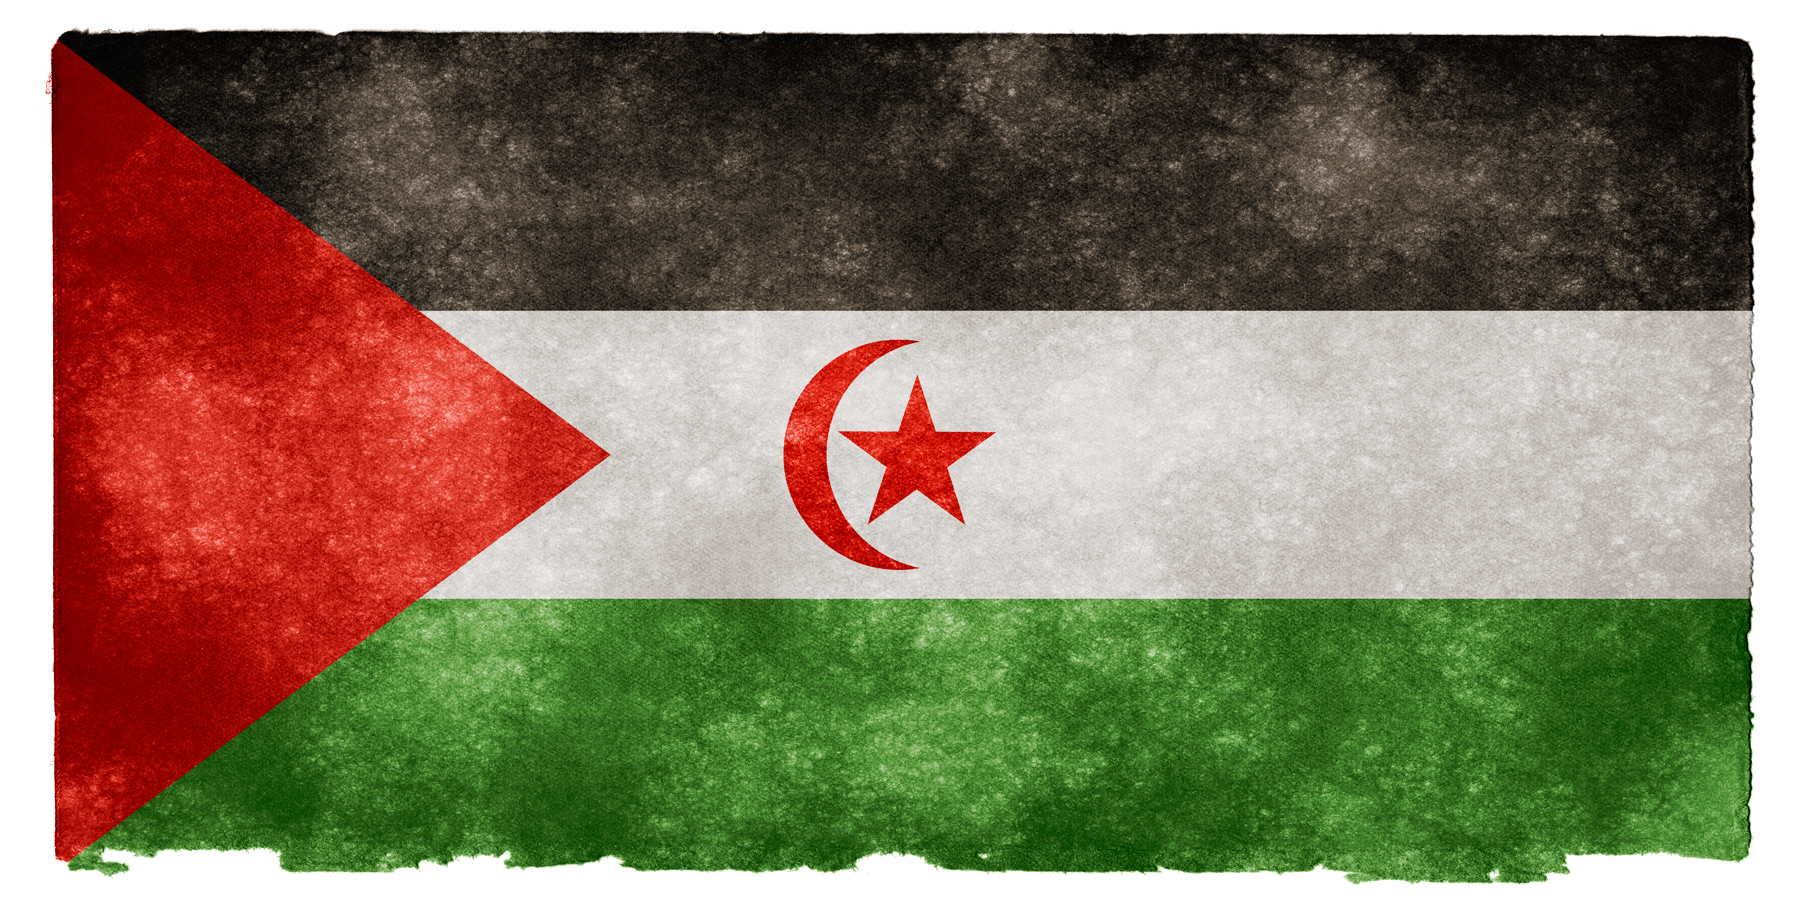 Western sahara grunge flag photo